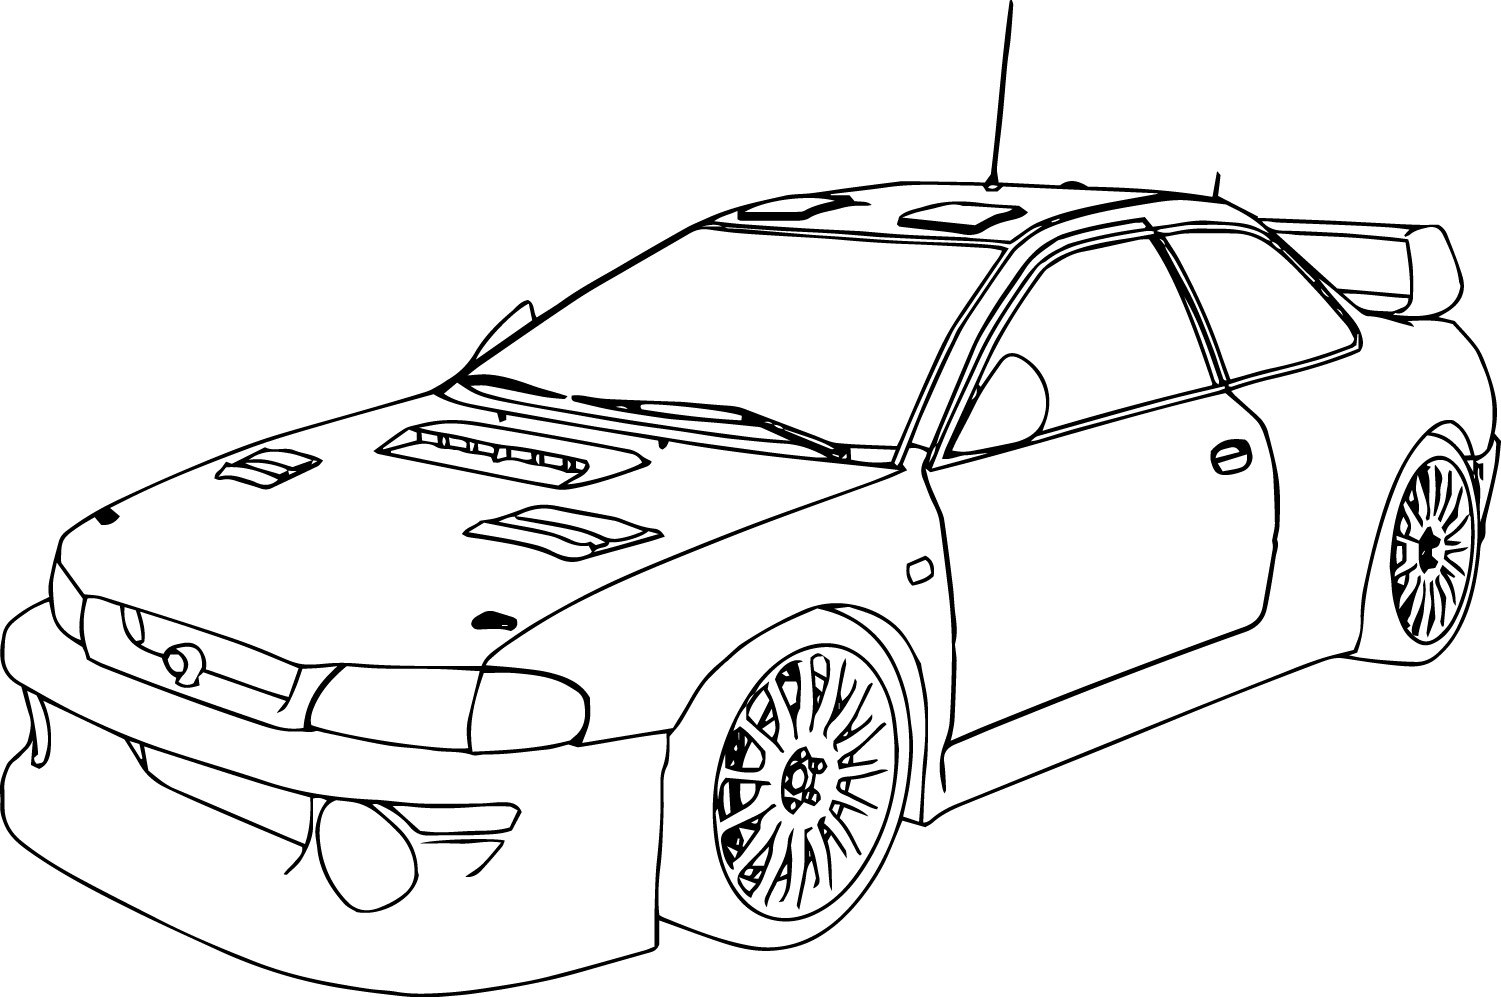 coloring cars printables chevy cars coloring pages download and print for free cars printables coloring